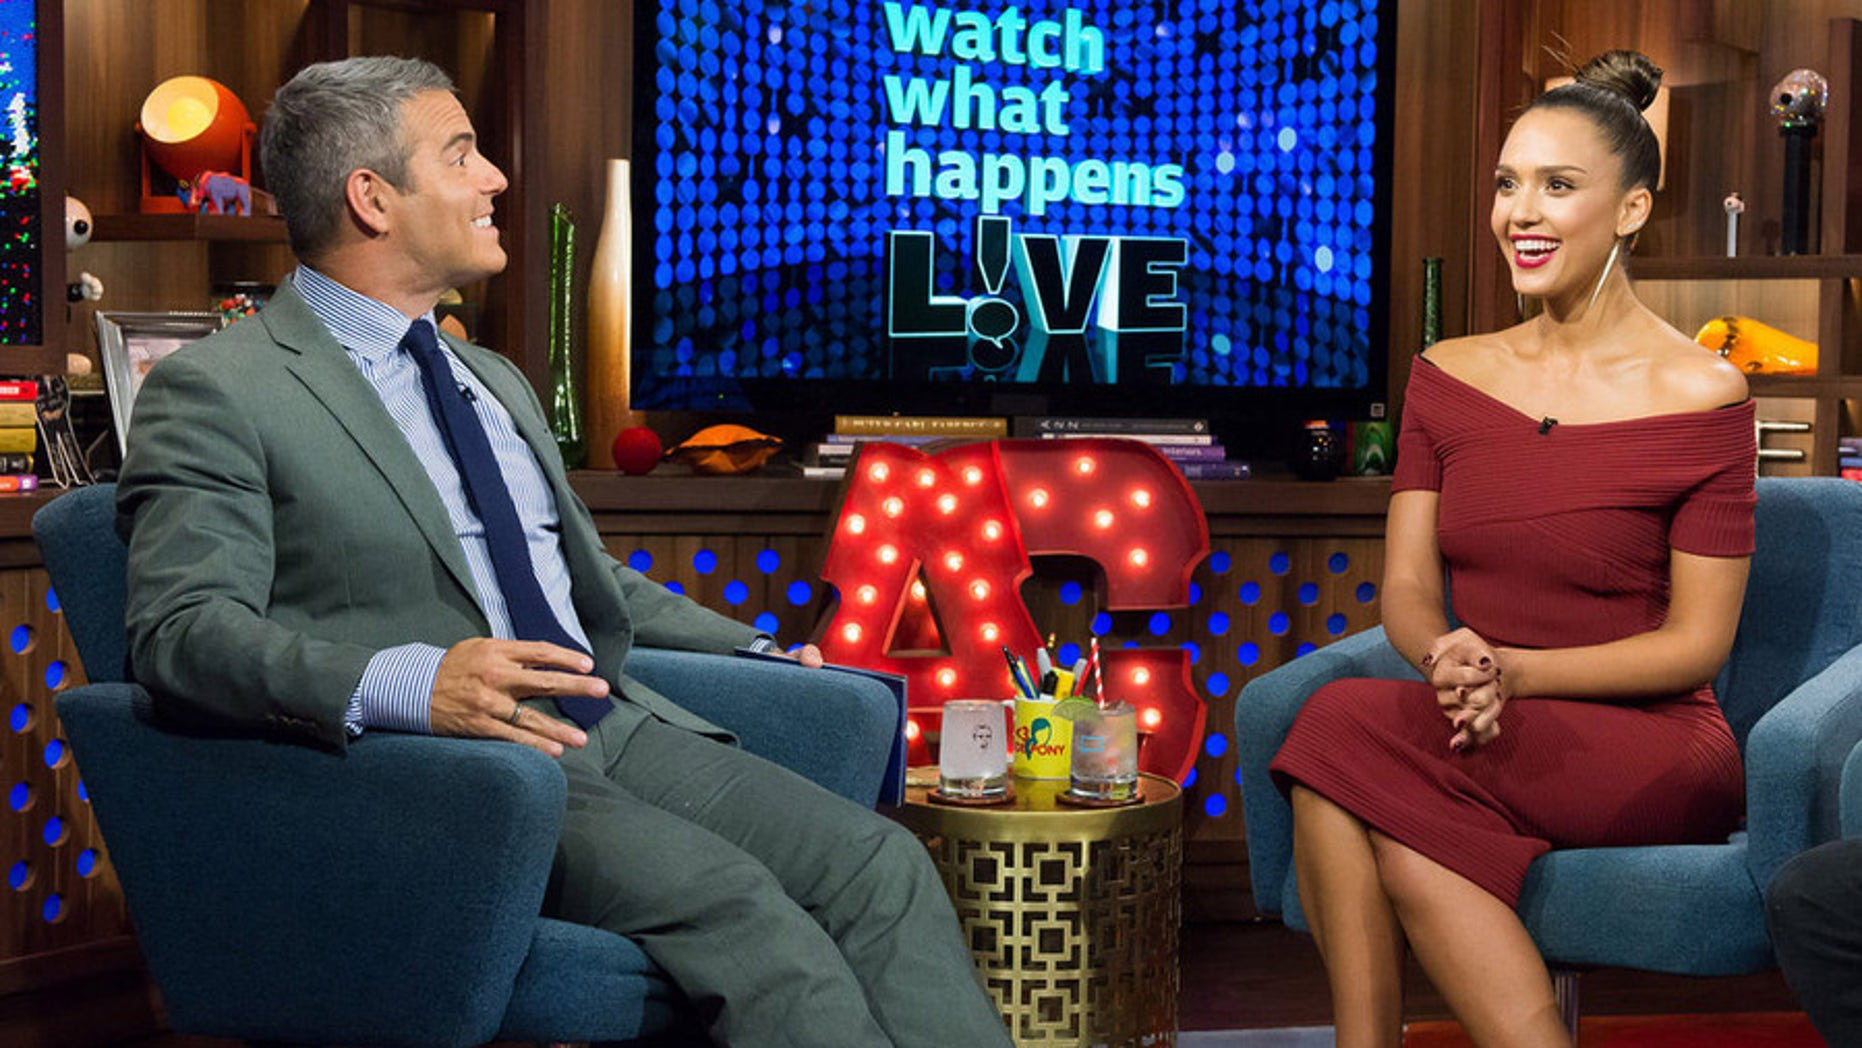 WATCH WHAT HAPPENS LIVE -- Episode 12145 -- Pictured: (l-r) Andy Cohen, Jessica Alba -- (Photo by: Charles Sykes/Bravo)